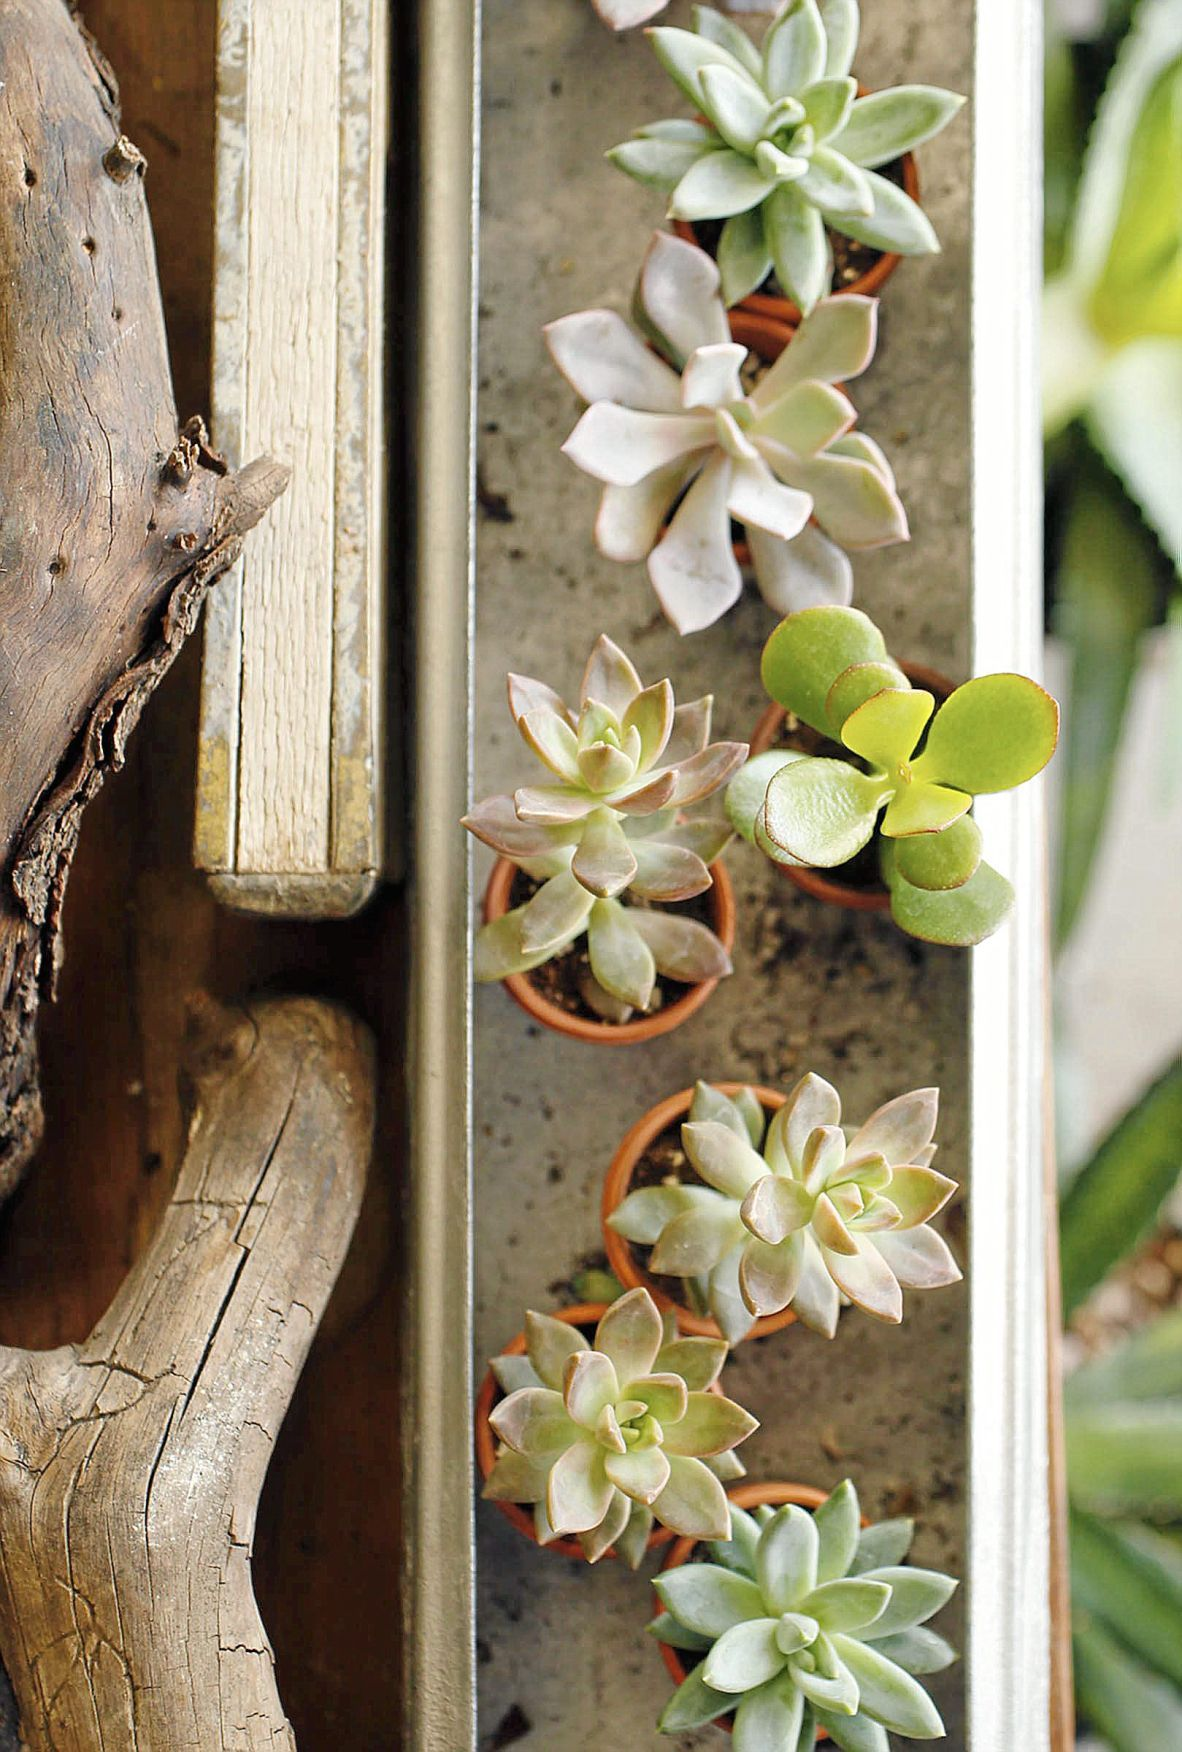 Succulents Offer Low Maintenance Beauty As Plant That Loves Oklahoma Heat Home Garden Tulsaworld Com